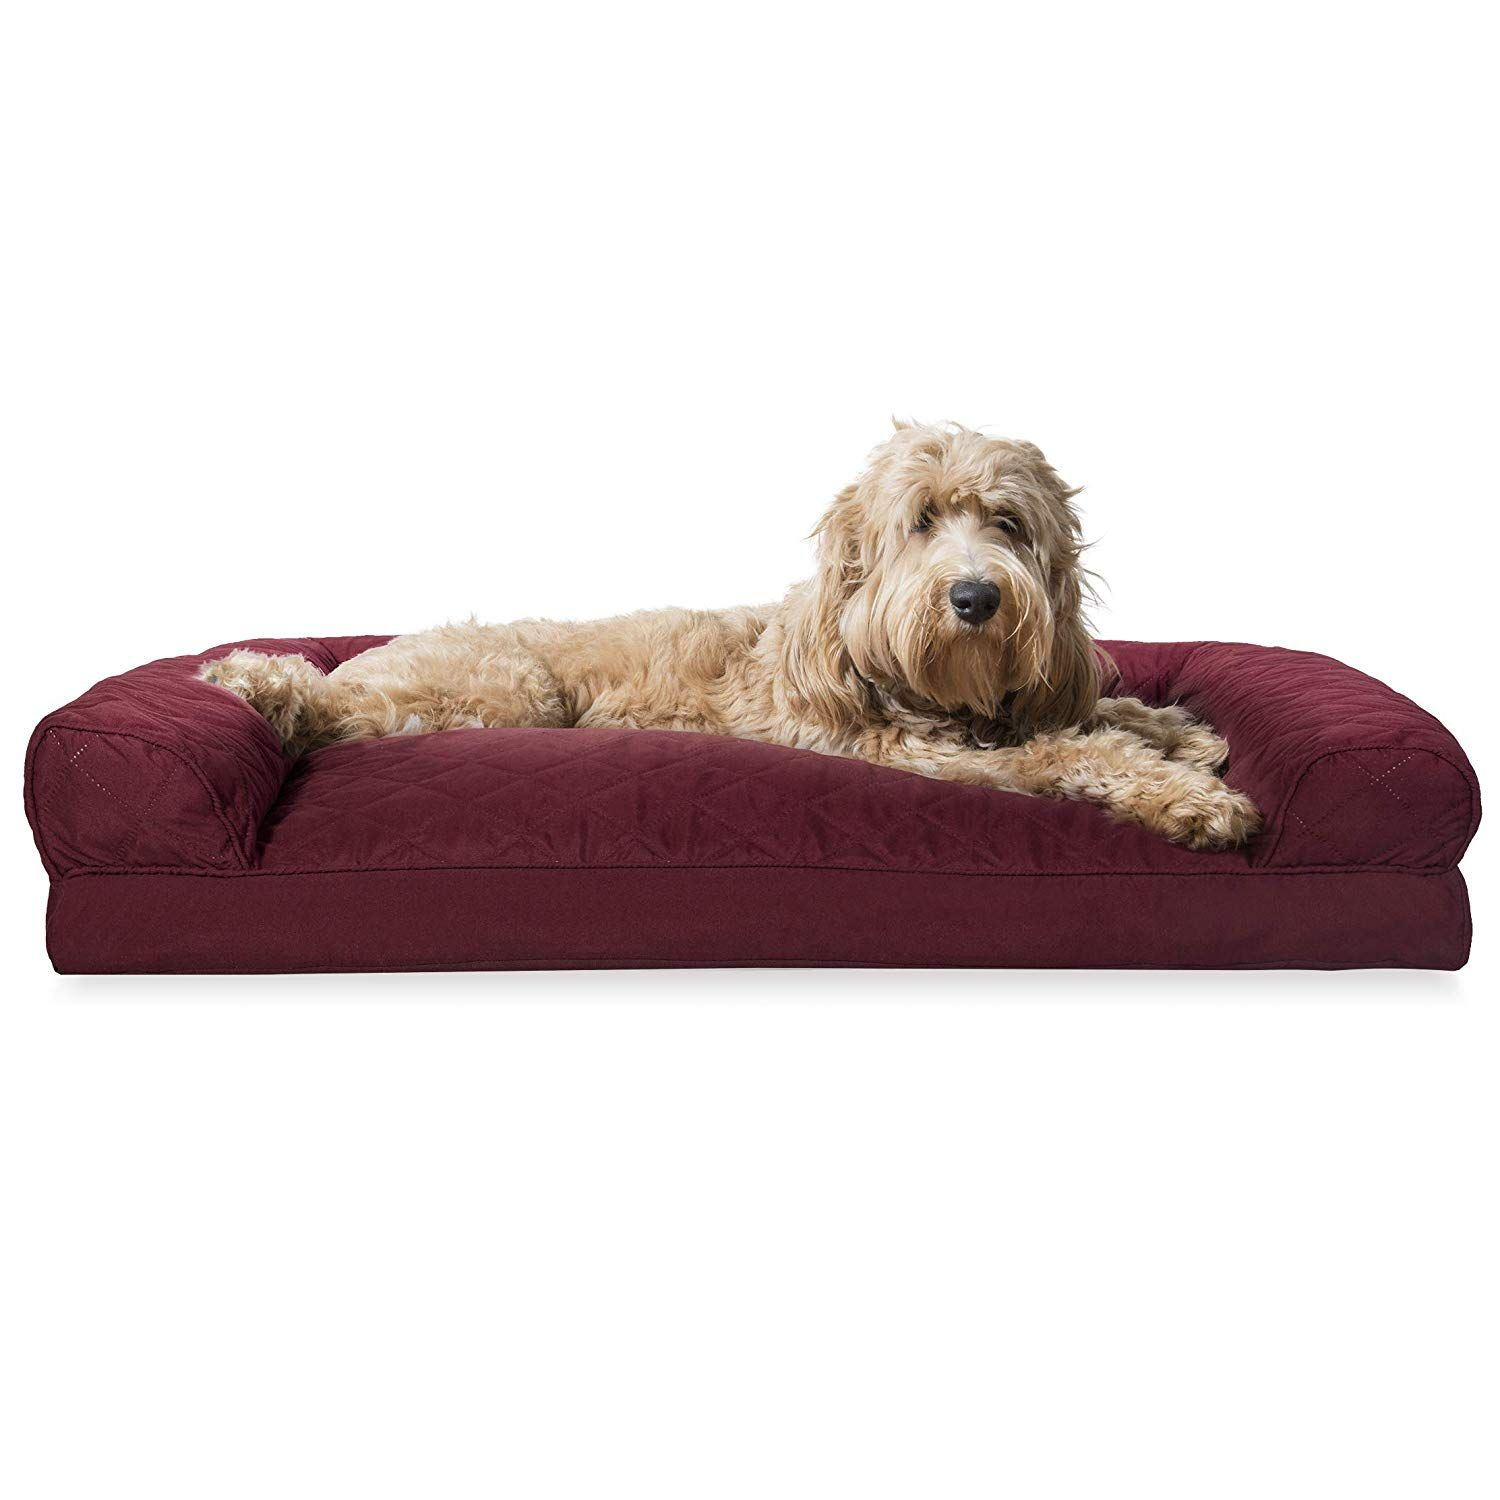 Furhaven Pet Dog Bed Quilted Pillow Cushion Traditional Sofa Style Living Room Couch Pet Bed W R Pet Sofa Bed Dog Bed Large Couch Pet Bed